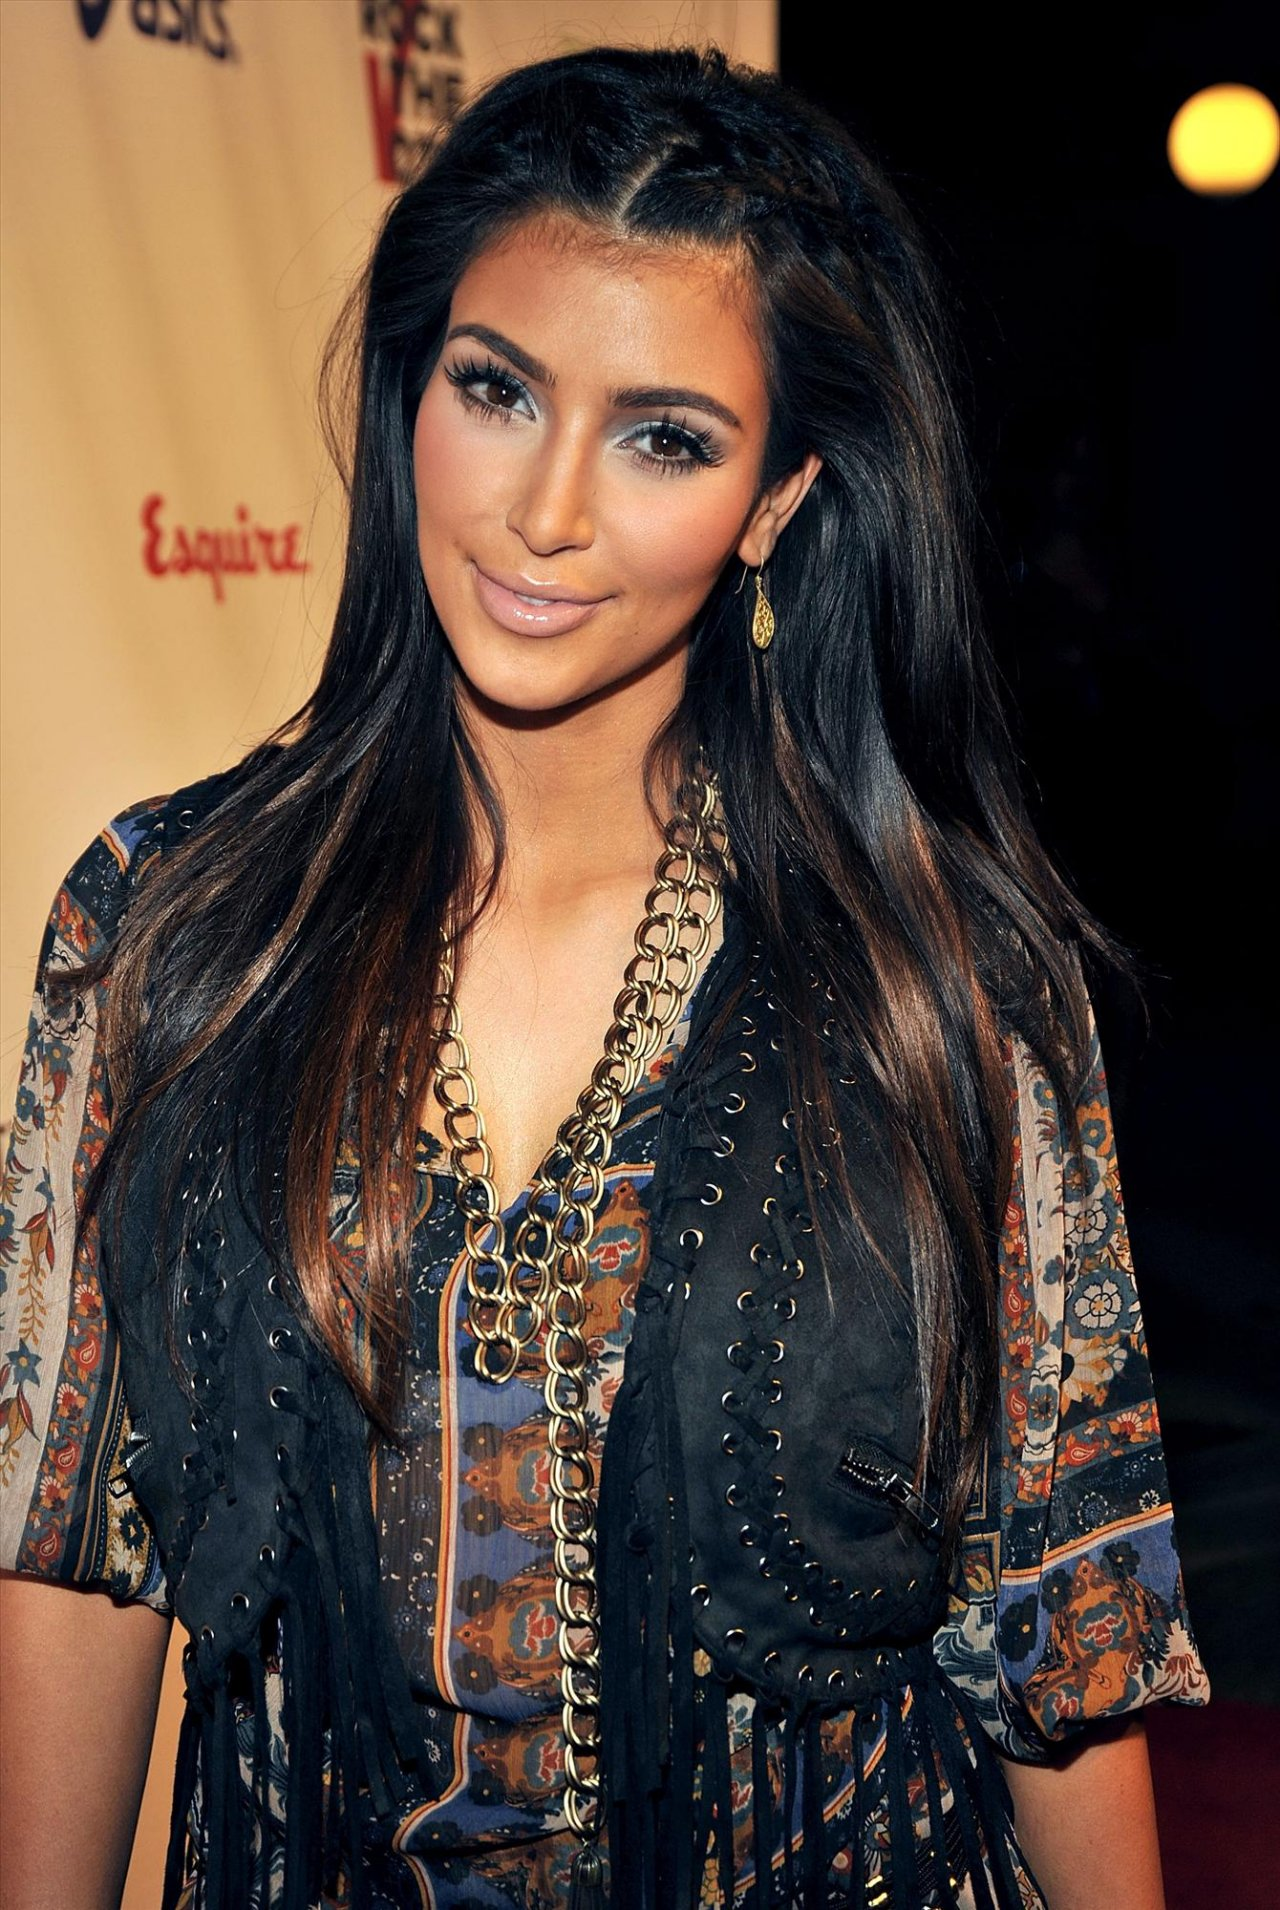 Image currently unavailable. Go to www.hack.generatorgame.com and choose Kim Kardashian: Hollywood image, you will be redirect to Kim Kardashian: Hollywood Generator site.